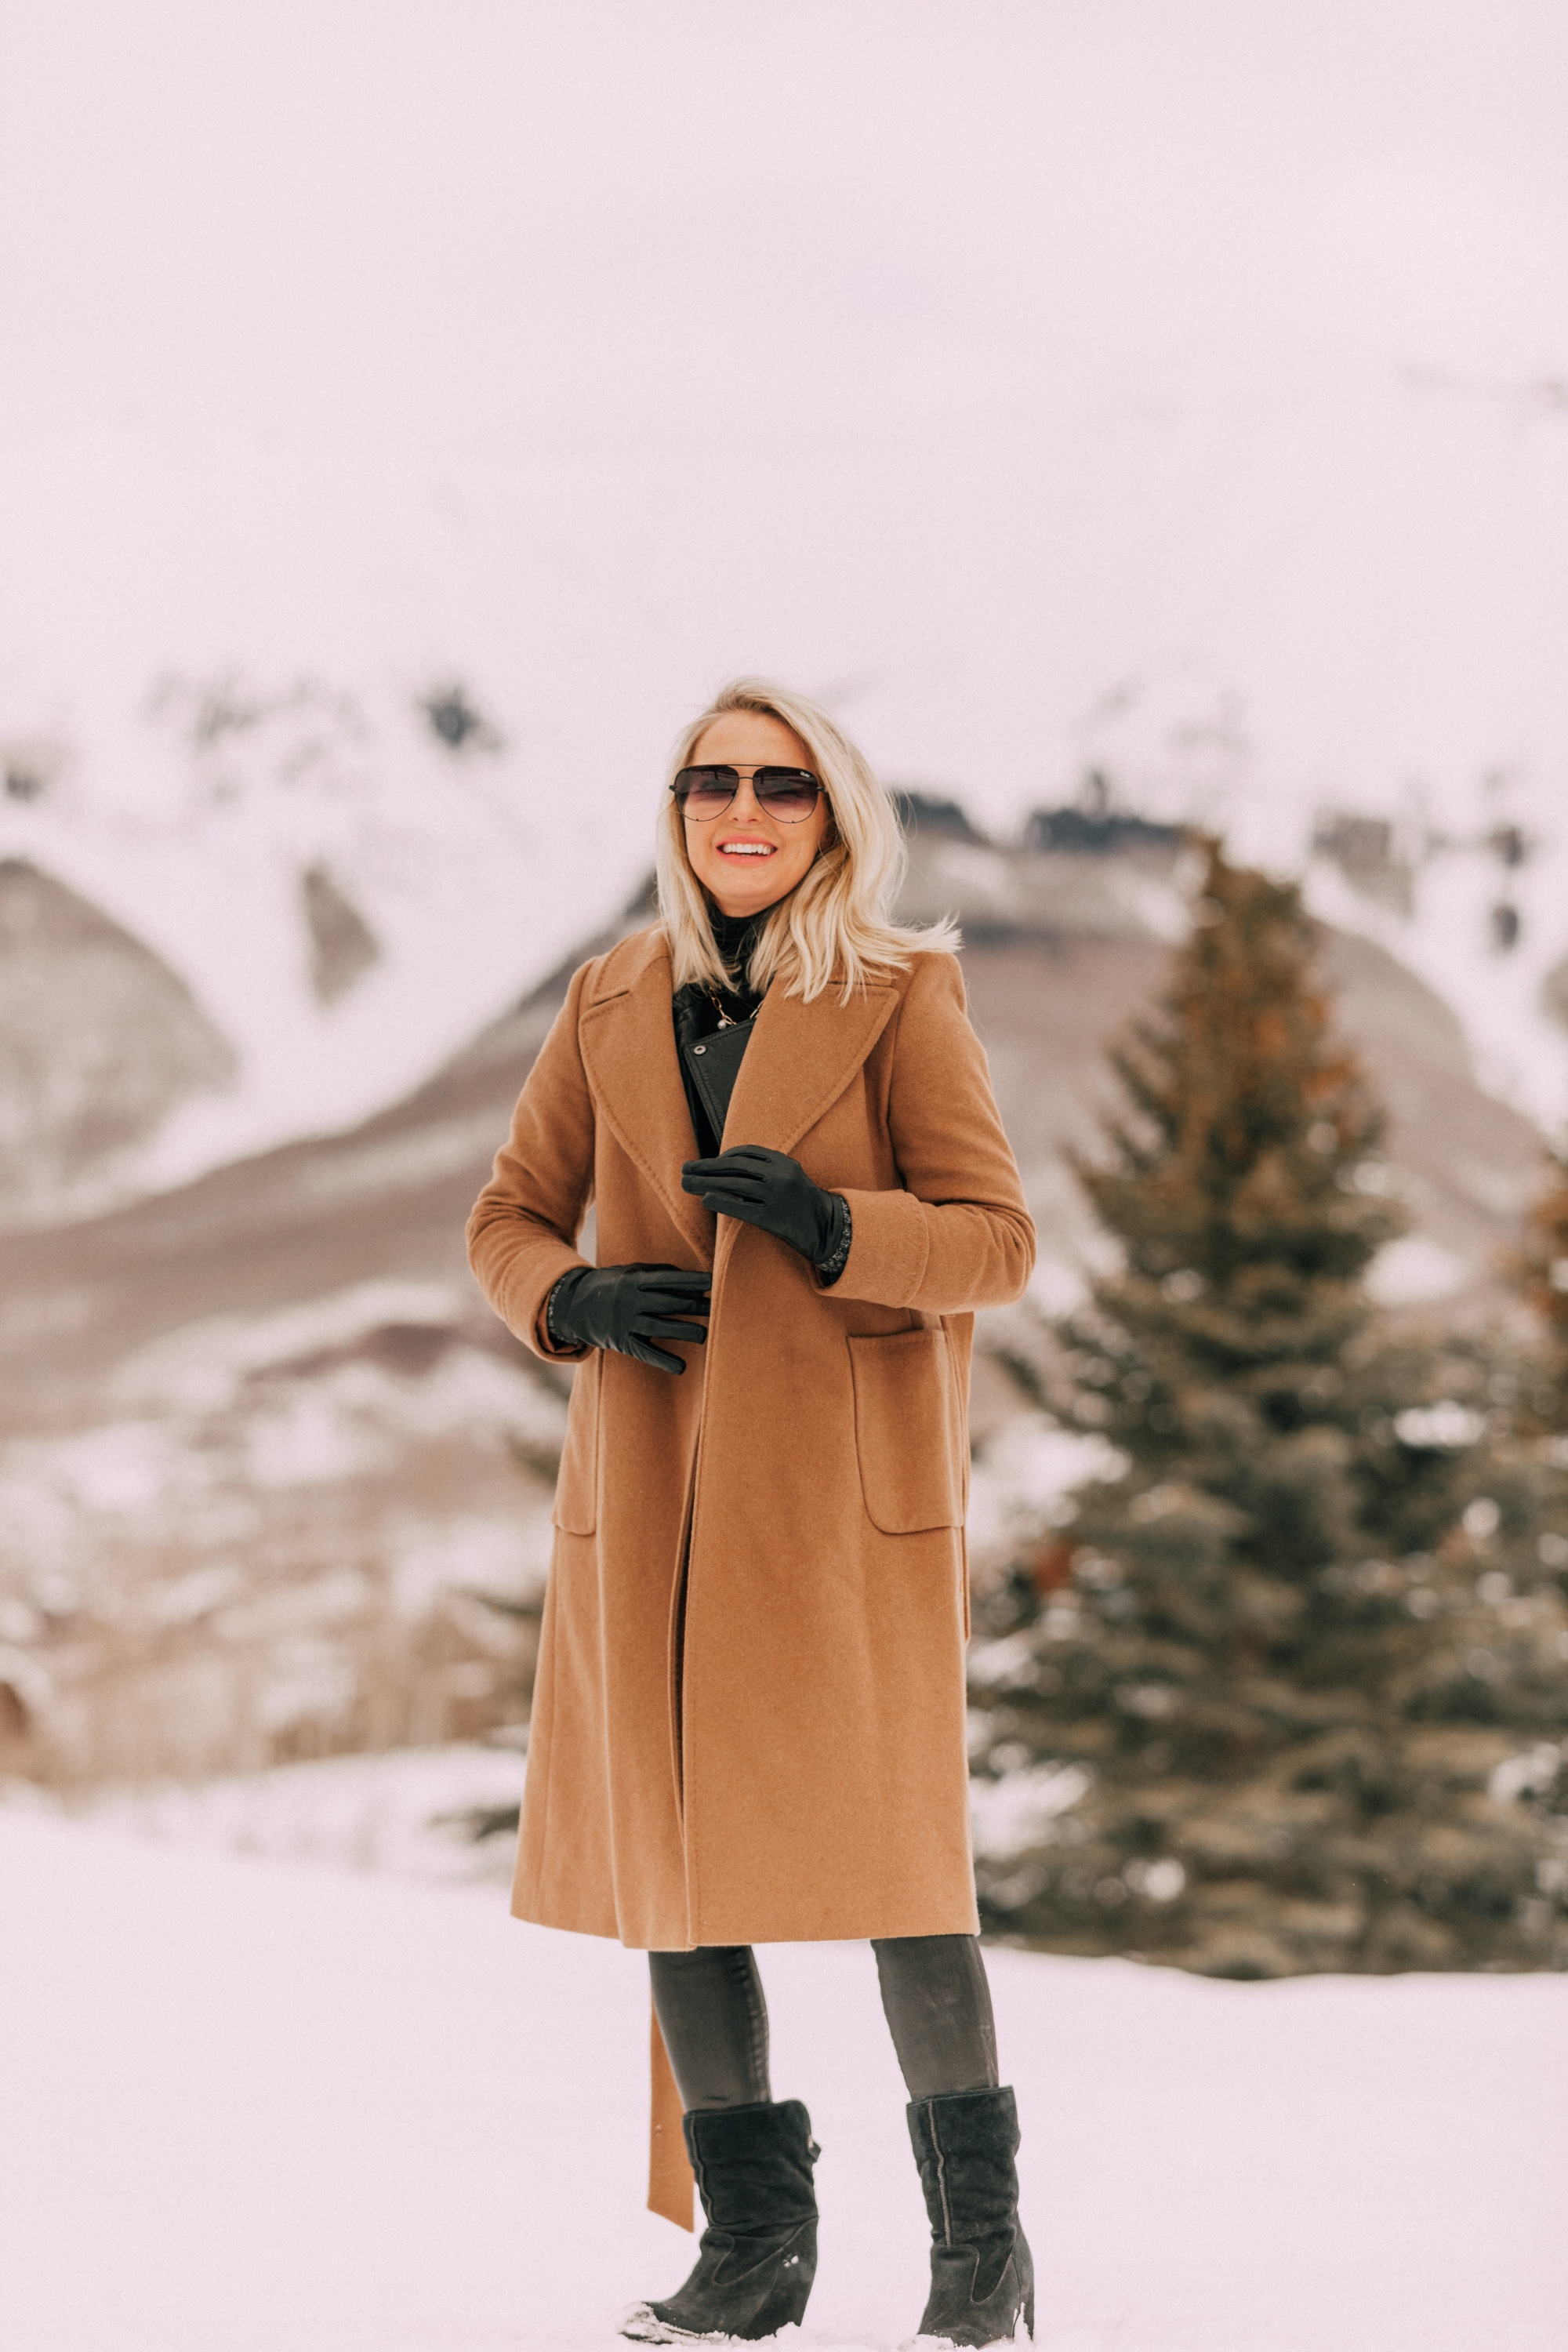 How To Layer A Moto Jacket, Fashion blogger Erin Busbee of BusbeeStyle.com wearing a black leather IRO moto jacket, Carolina Amato gloves, rocket leatherette skinny jeans by Citizens of Humanity, black cashmere turtleneck, and Ugg wedge boots and putting on a wool camel coat by Mackage in Telluride, CO